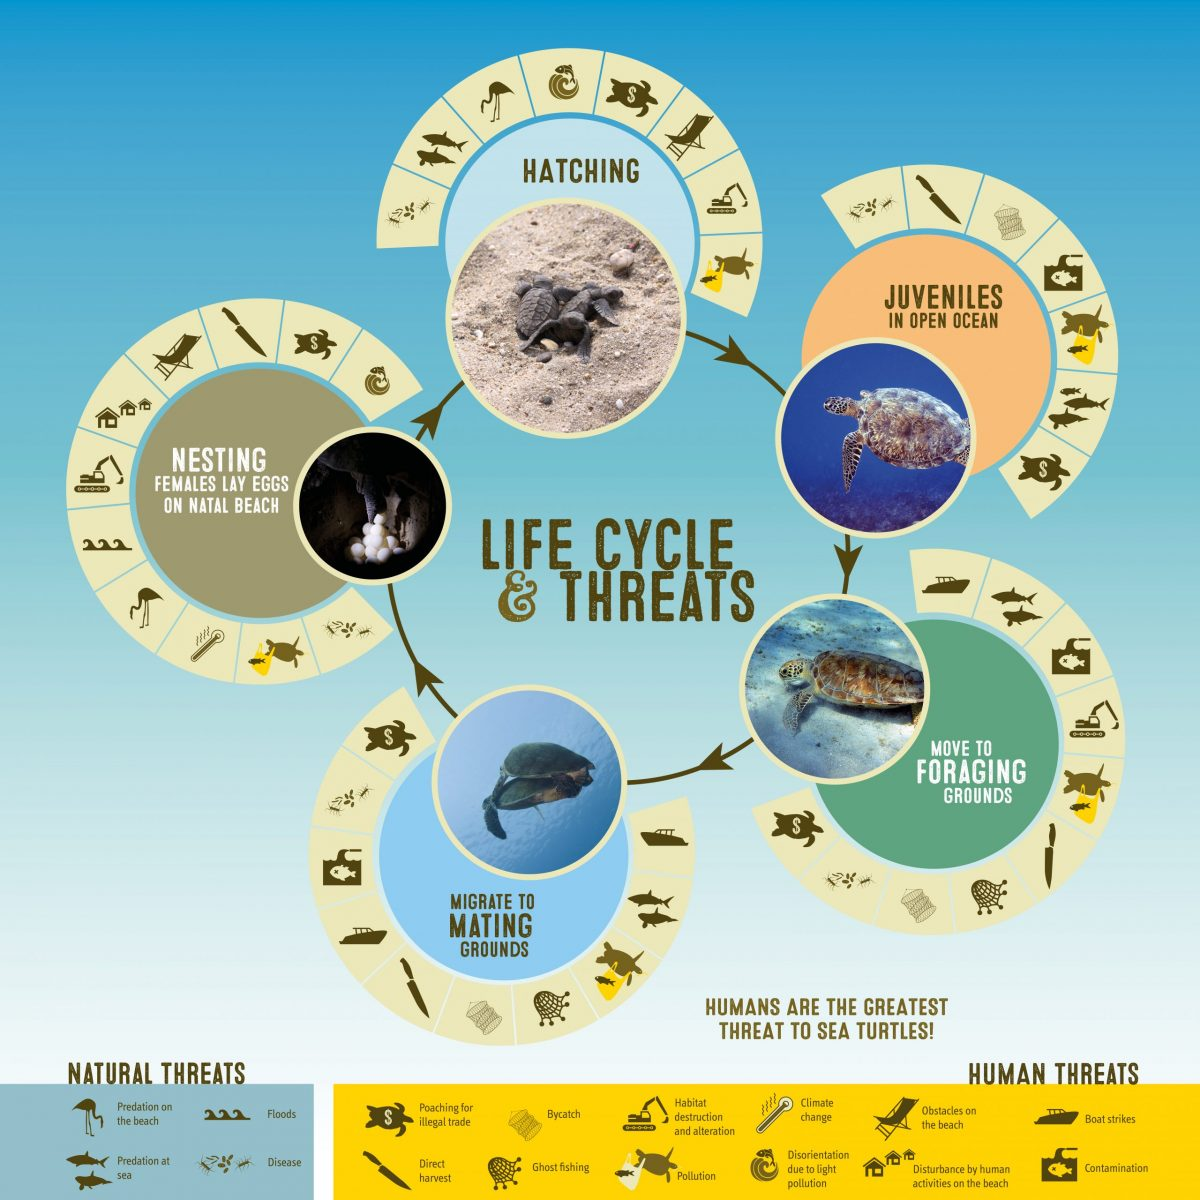 Threats to sea turtles